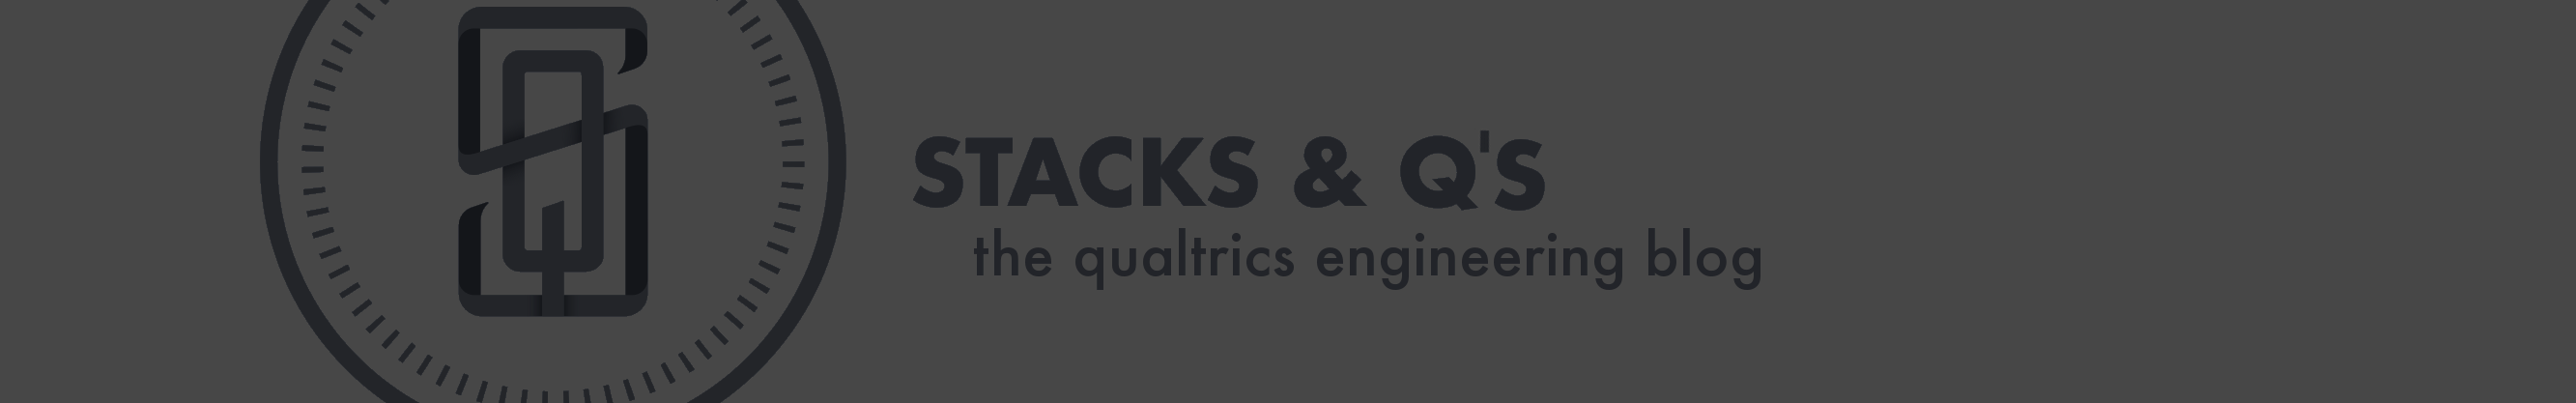 DataTables, AngularJS, and Django | Stacks & Q's